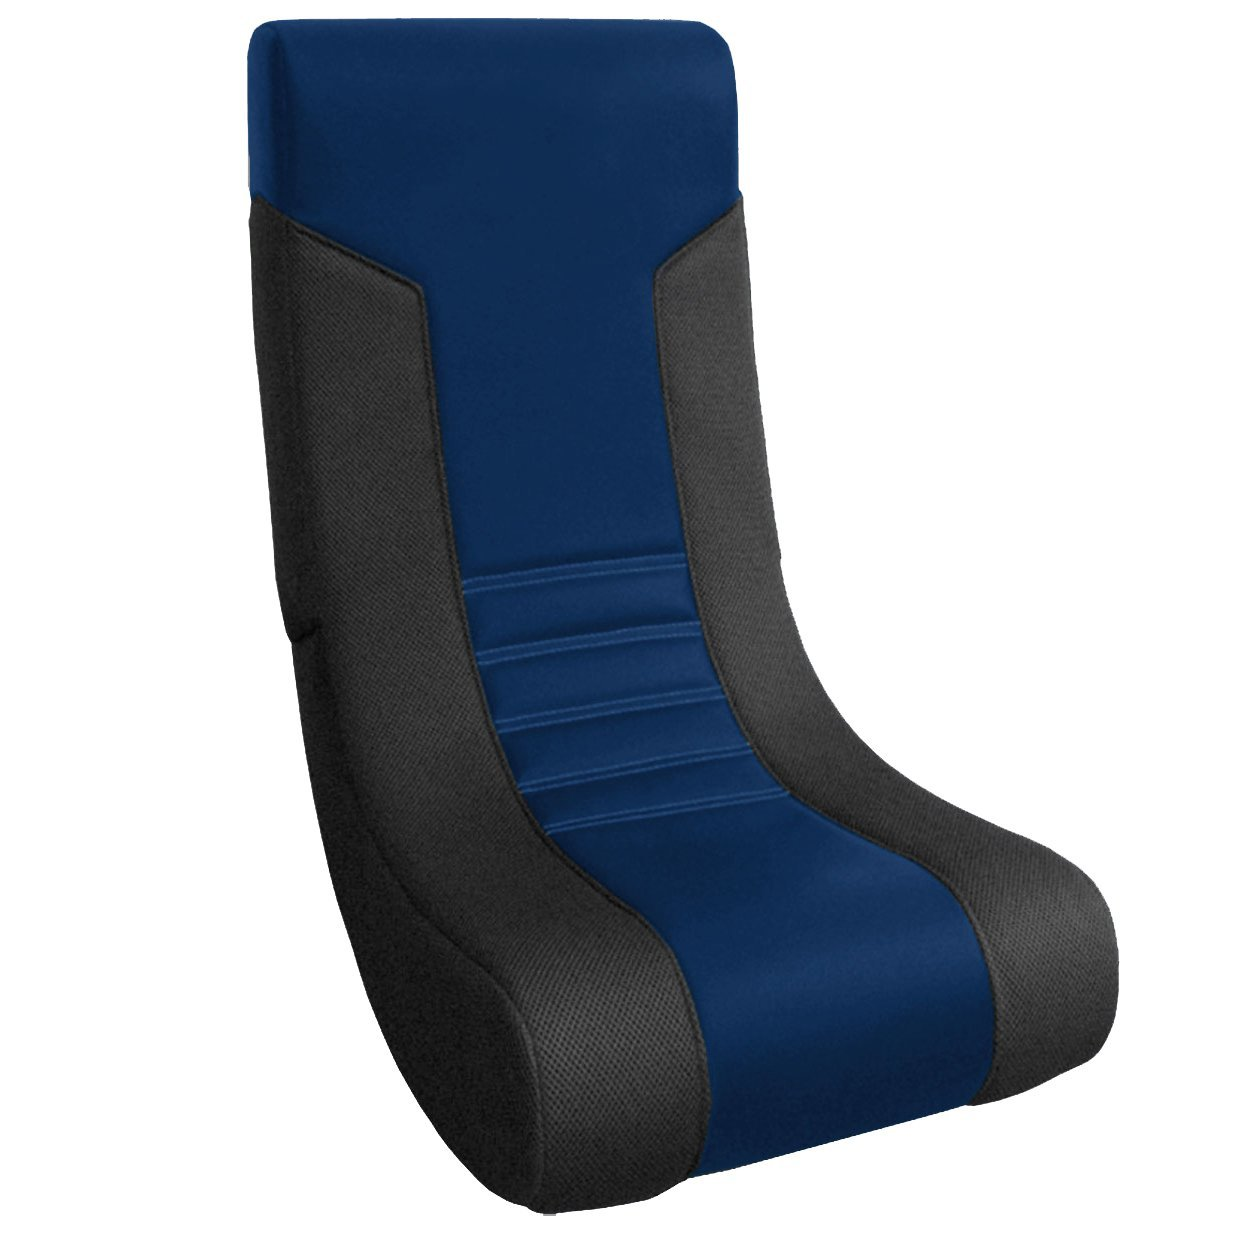 Imperial Ergonomic Video Rocker Gaming Chair, Navy